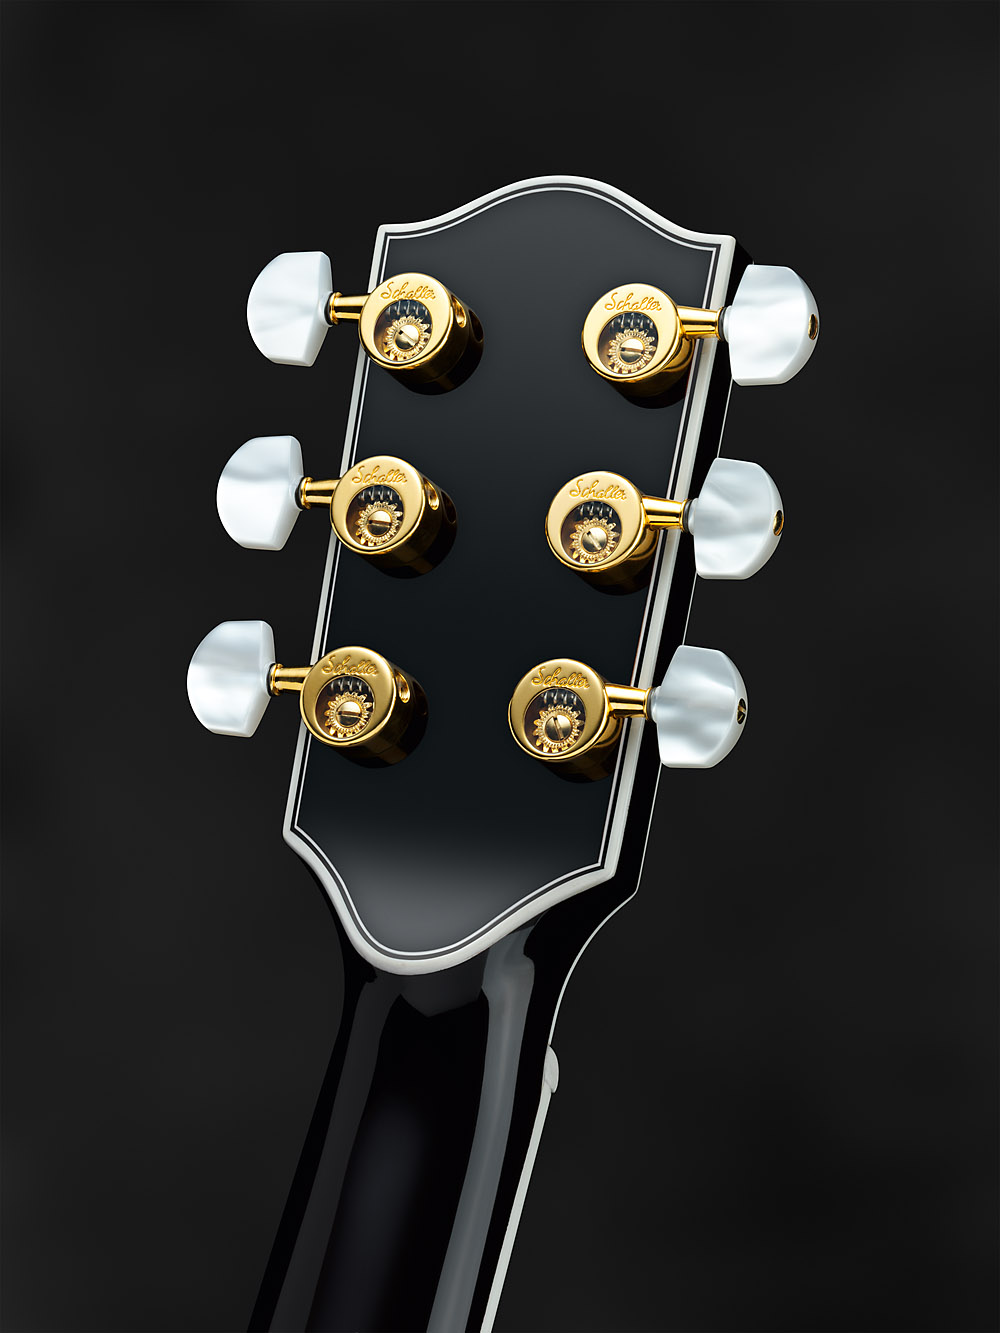 davinci-gold-headstock